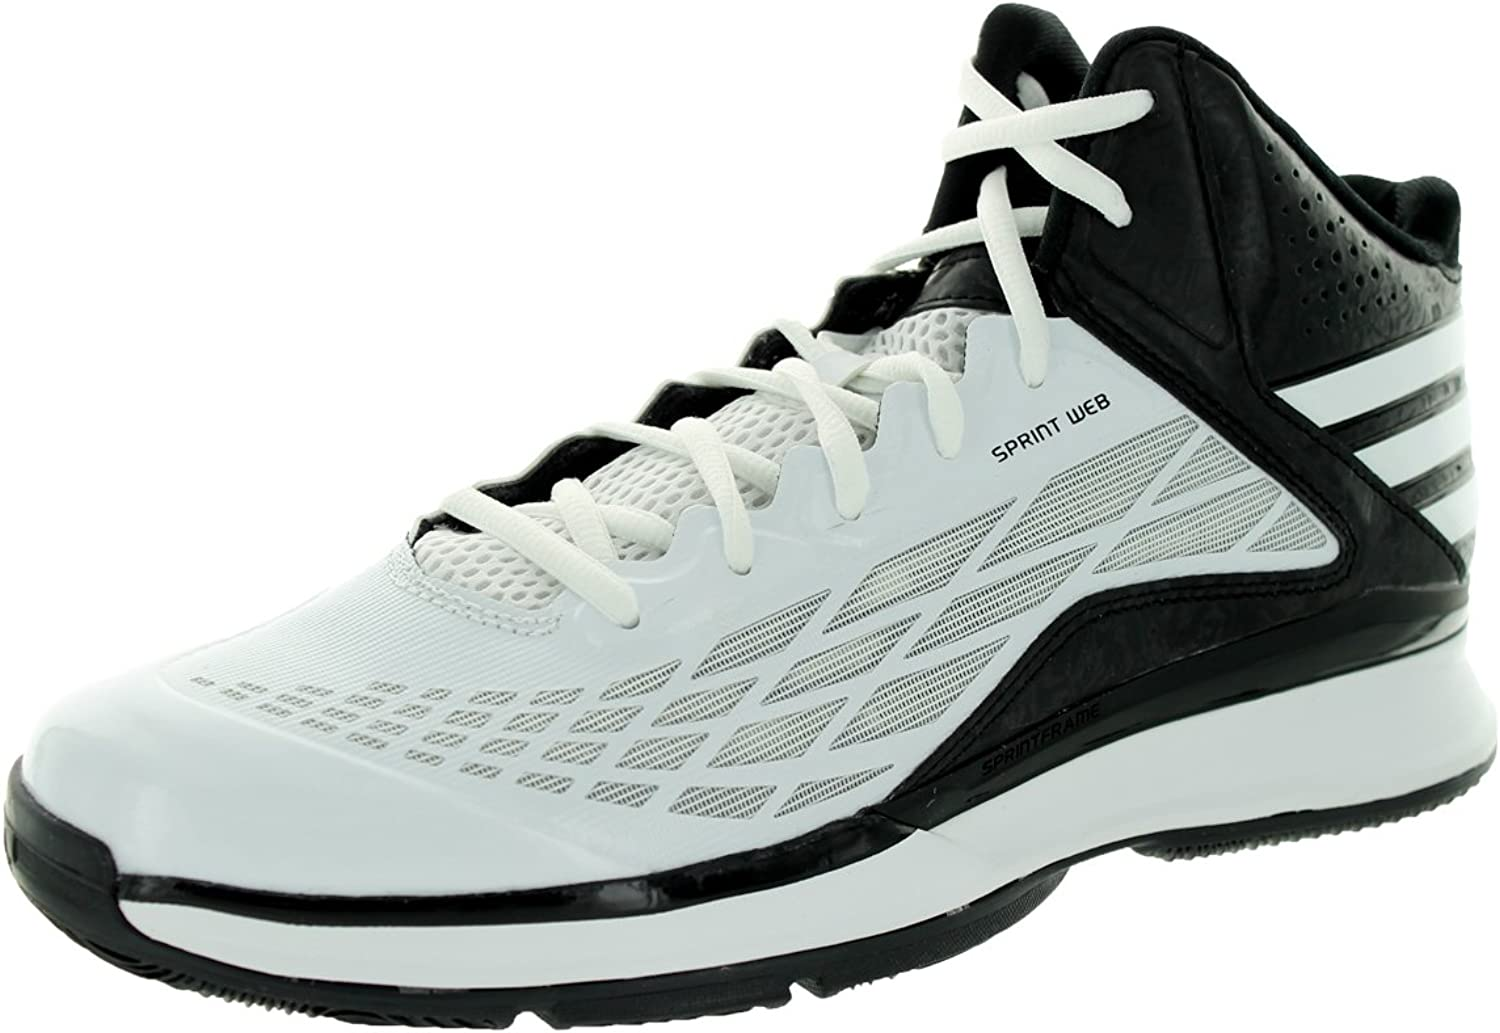 Adidas Men's Transcend Basketball shoes